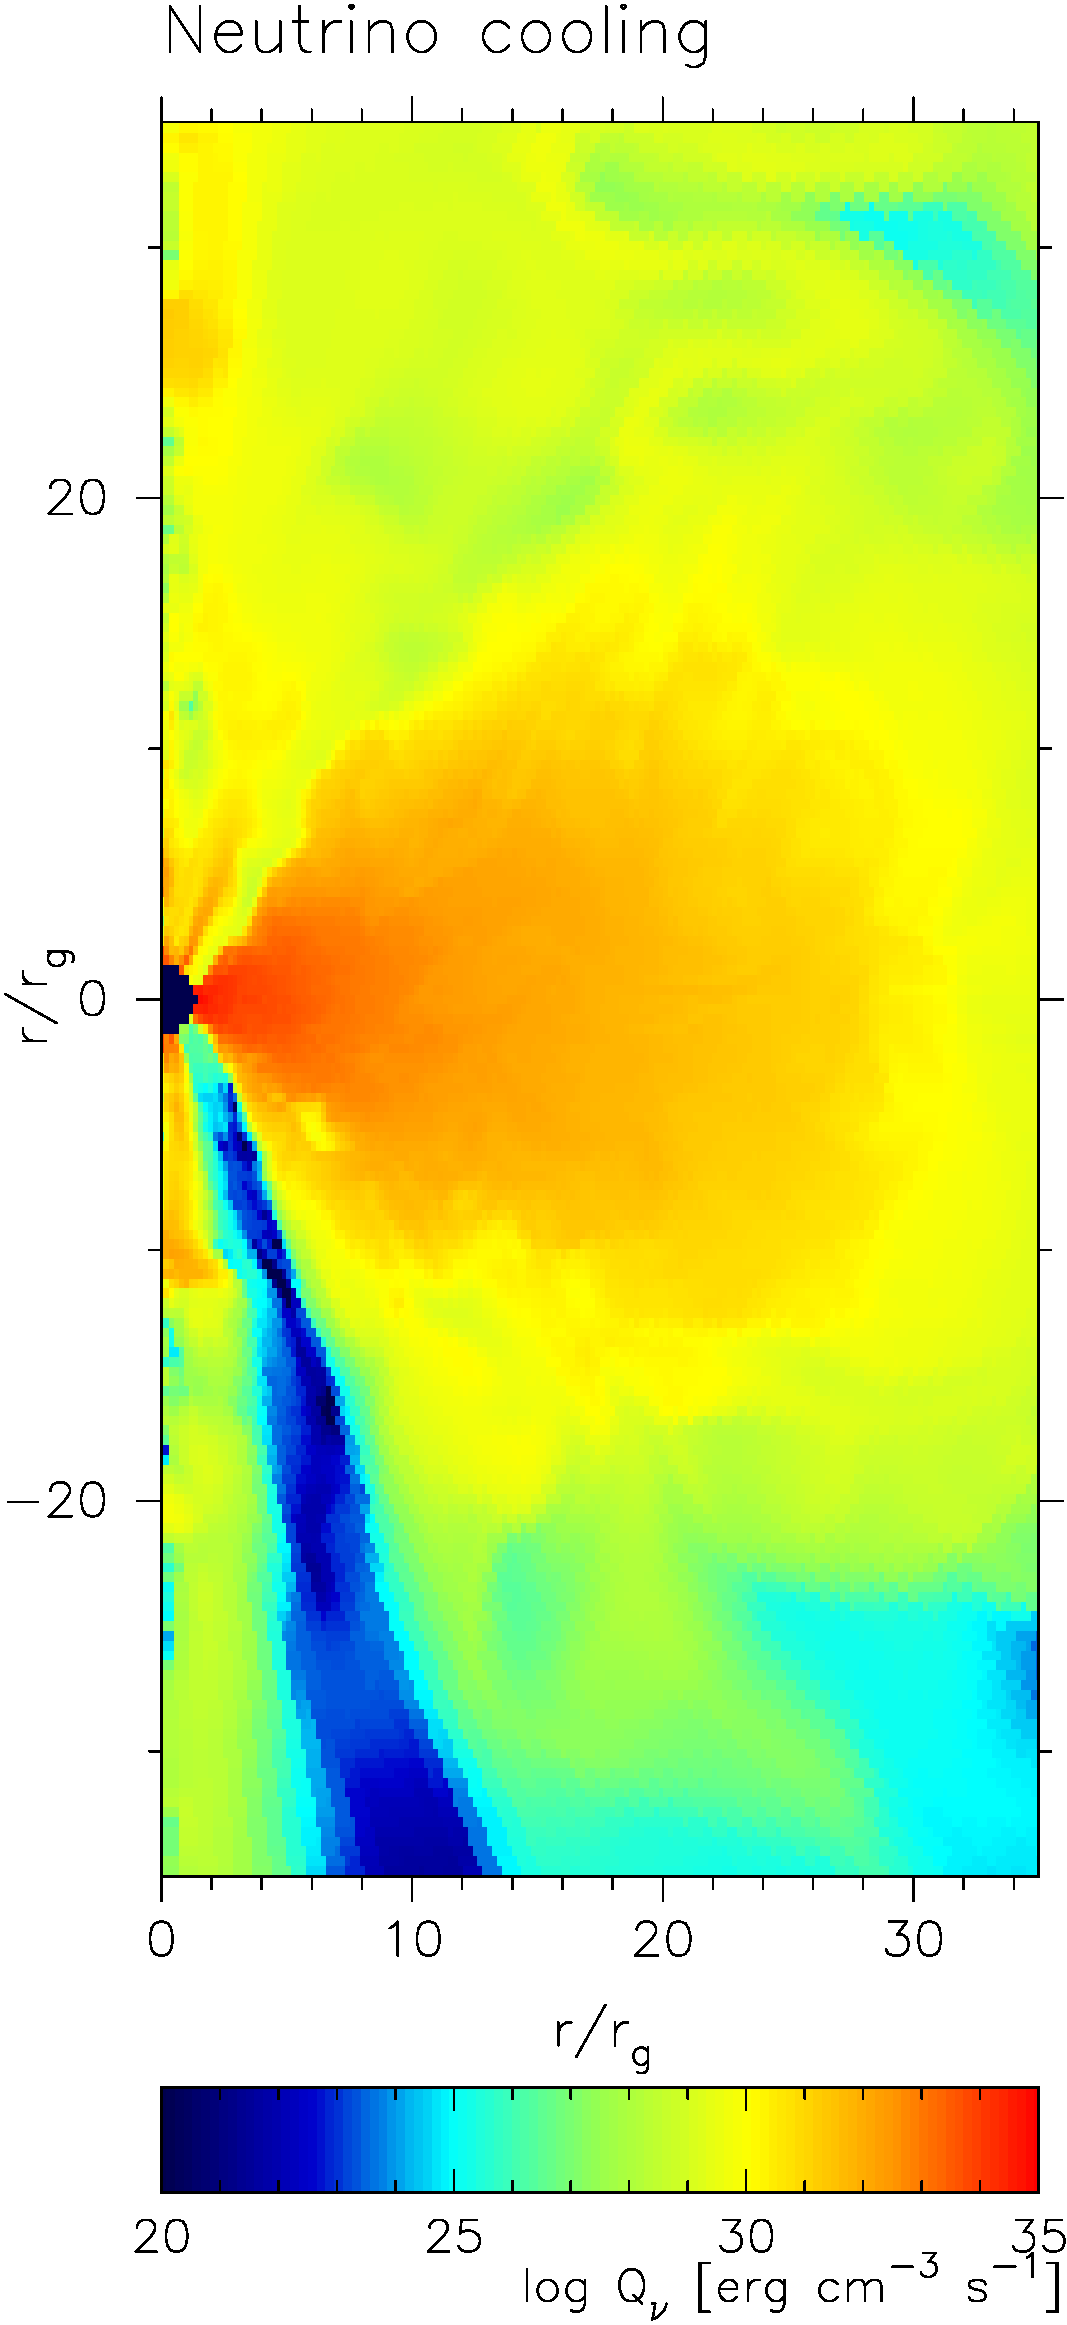 Neutrino emissivity (left), electron fraction (middle), and gas to magnetic pressure ratio (right) in the 2-dimensional simulation of the innermost parts of accretion flow around black hole in the GRB central engine. Contours show the magnetic field configuration. Parameters of the model are black hole spin